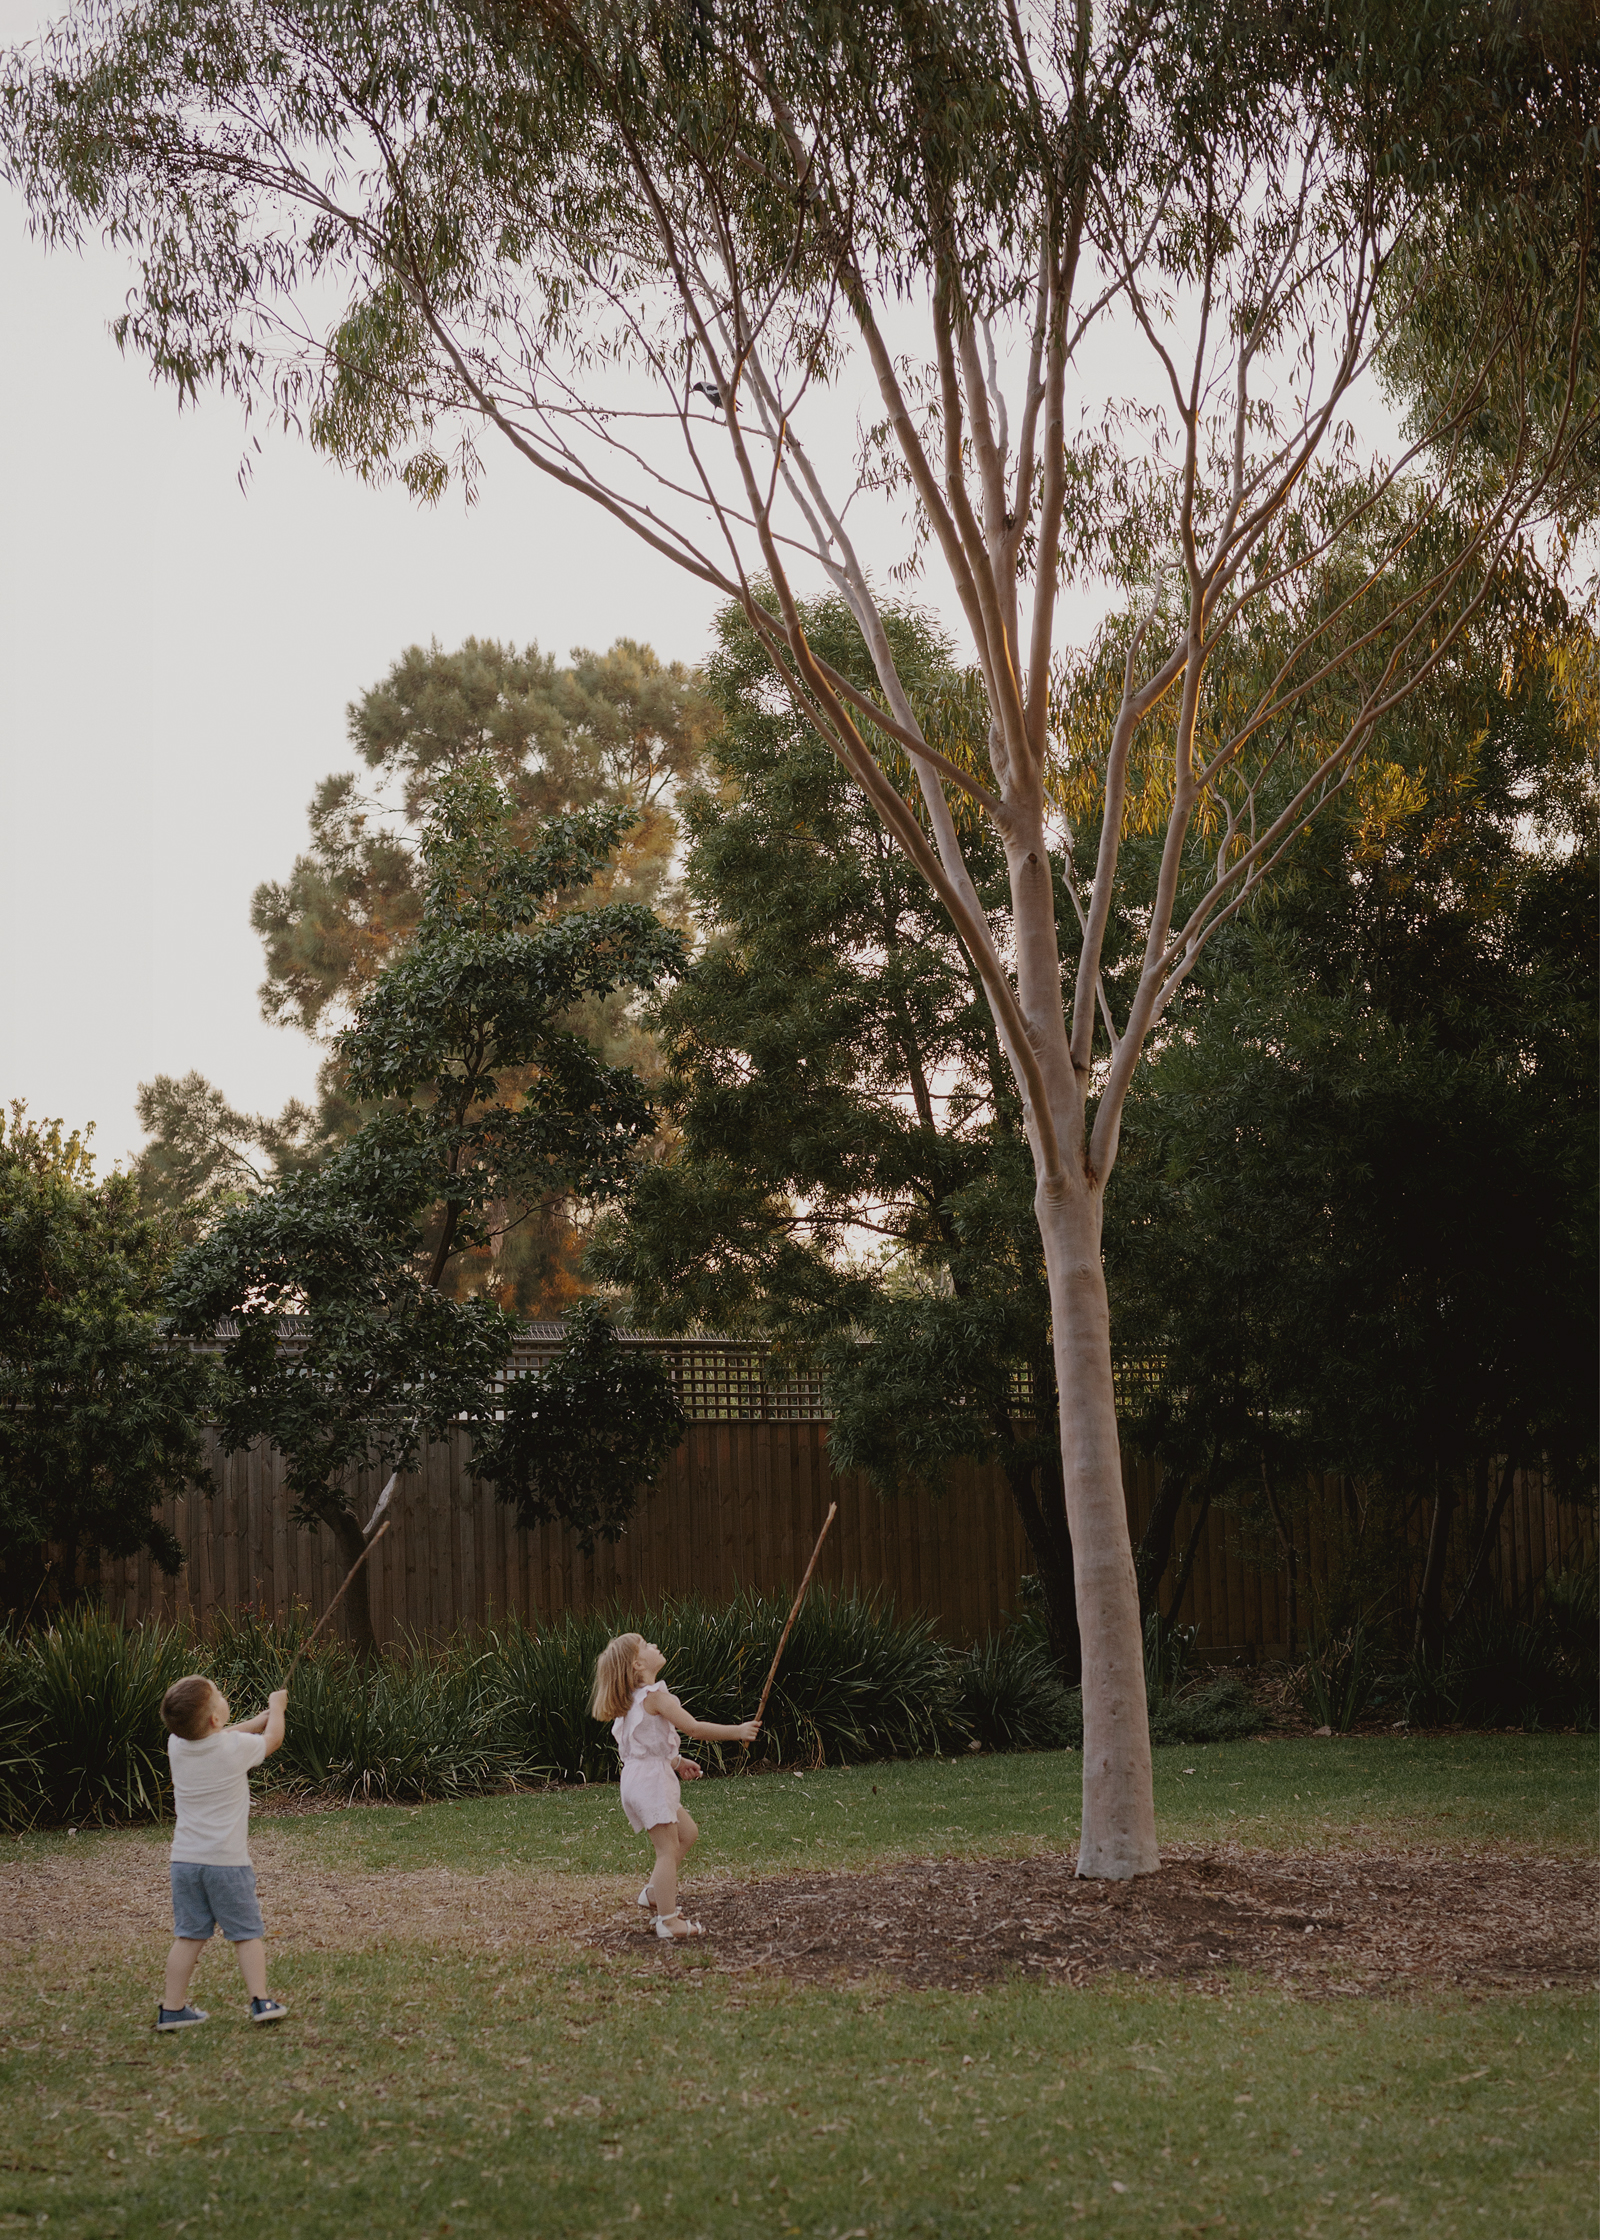 Children looking at a magpie in the tree